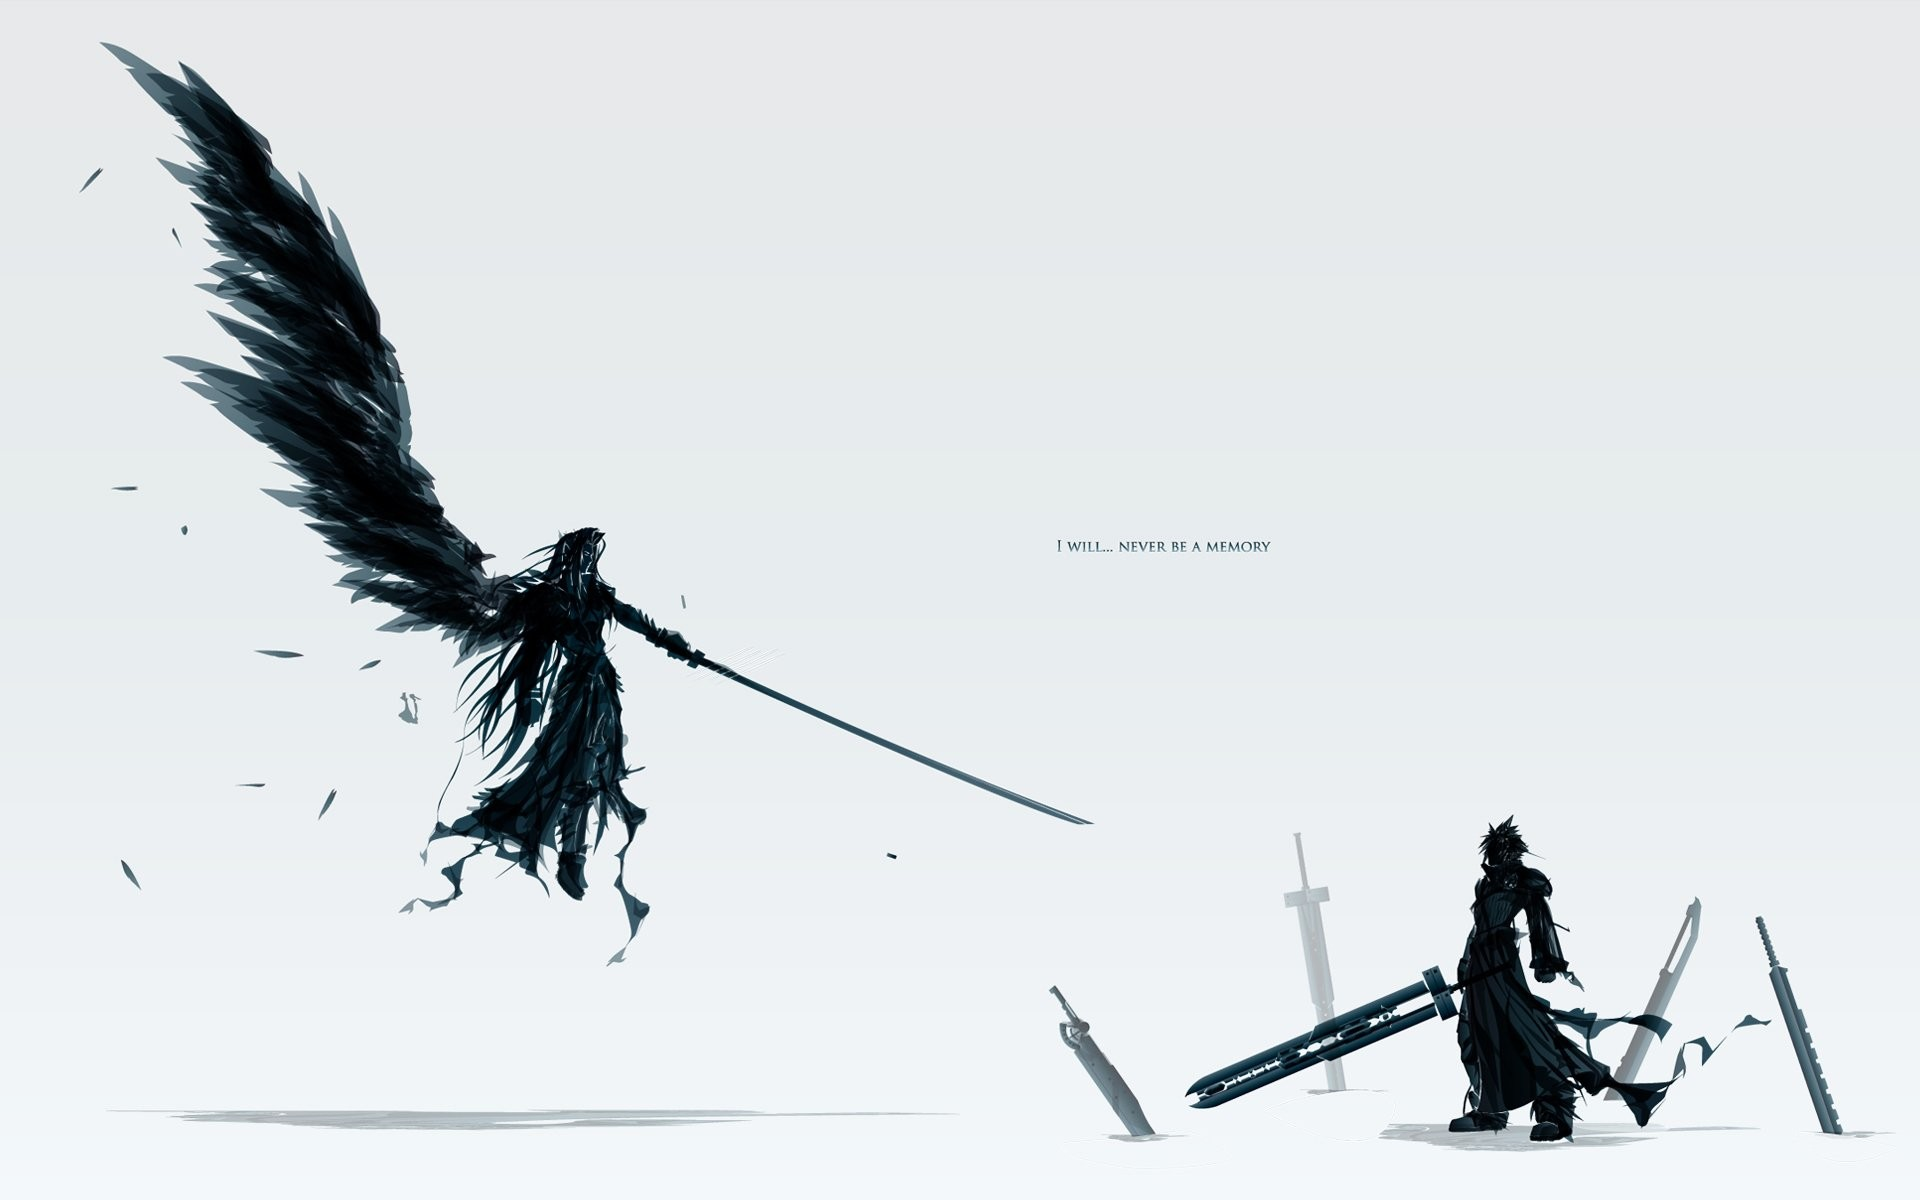 1920x1200 Filme - Final Fantasy VII: Advent Children Schwert Sephiroth (Final Fantasy)  Final Fantasy